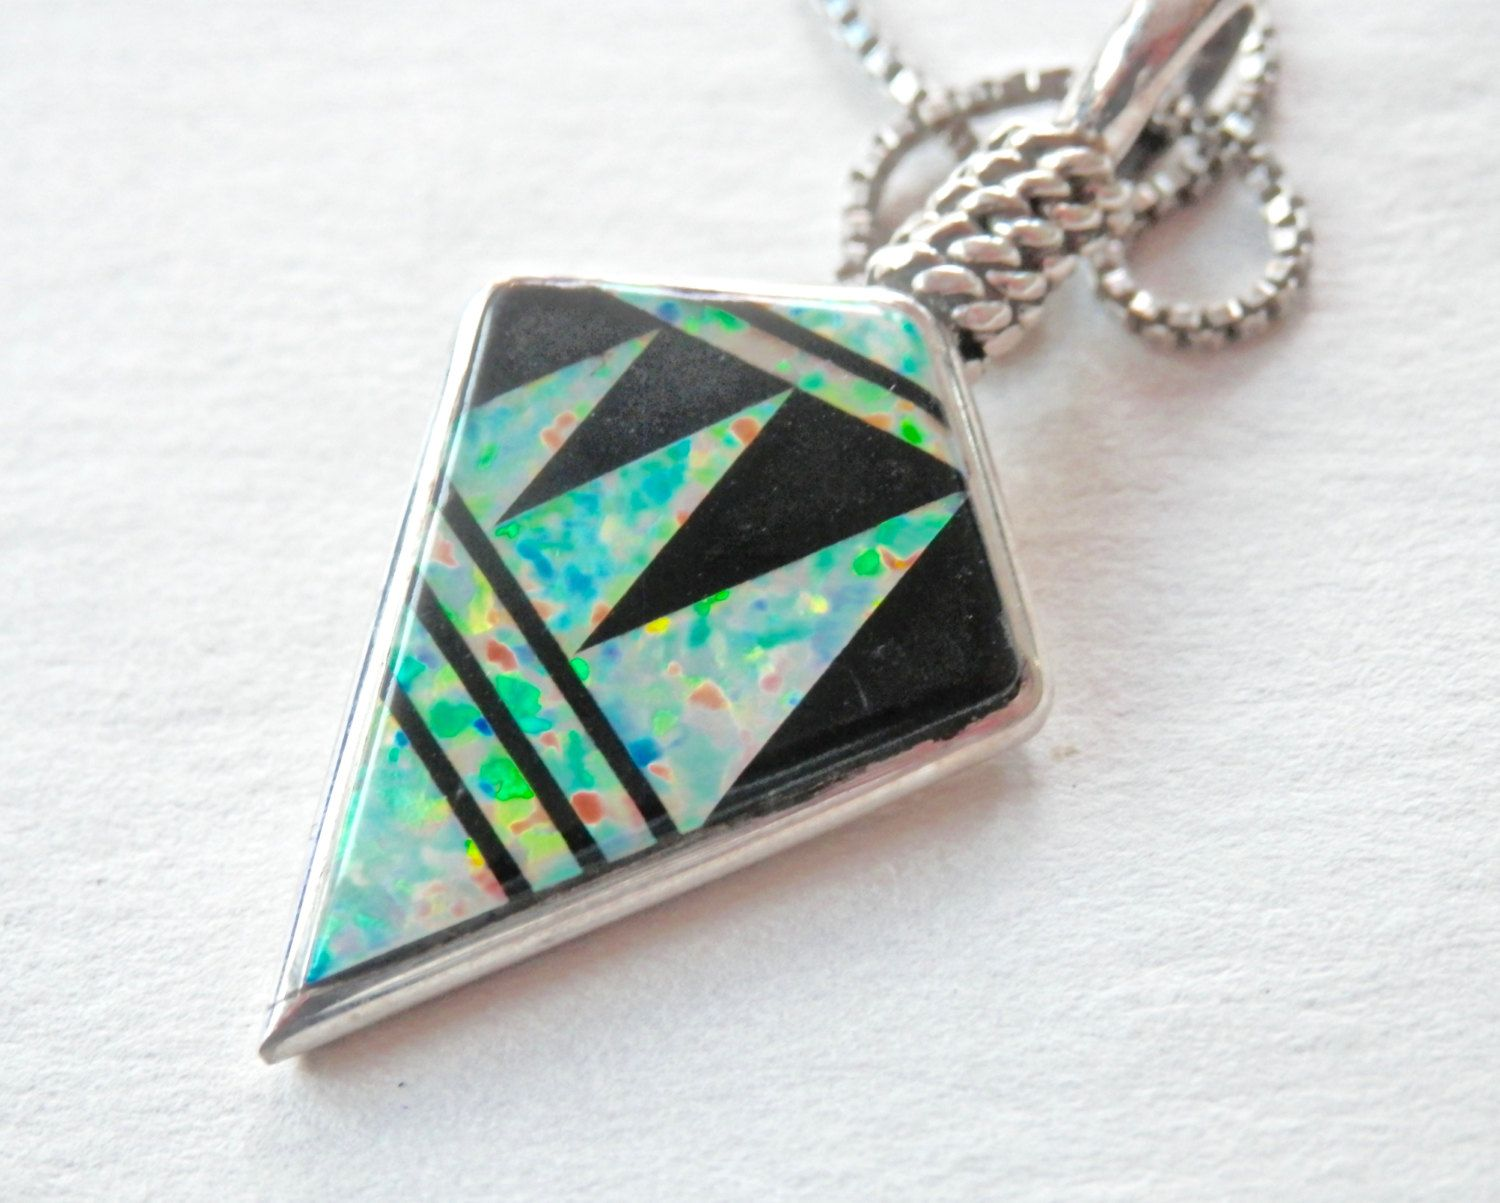 Native american pendant opal necklace opal inlay onyx inlay native american pendant opal necklace opal inlay onyx inlay tomahawk pendant mozeypictures Images